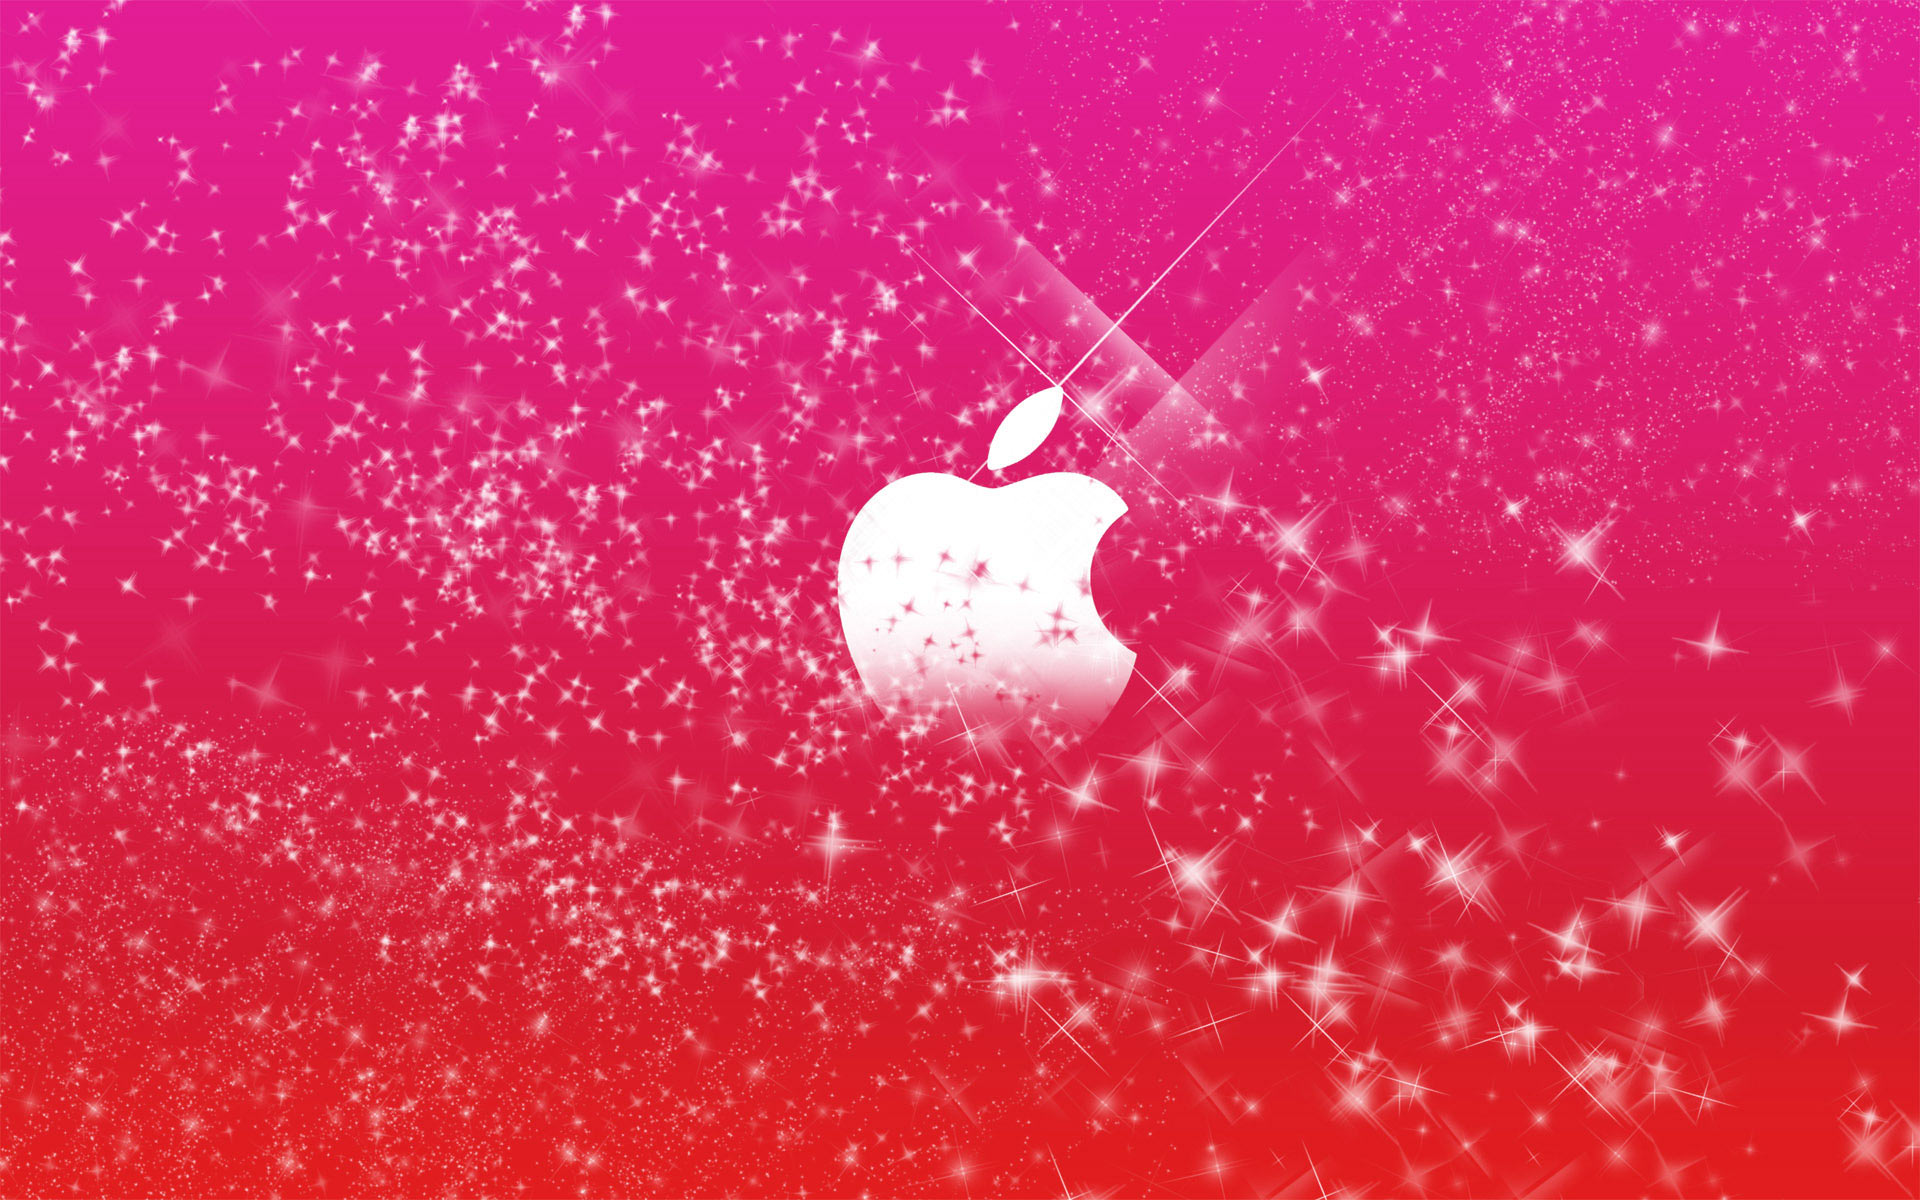 Pink Apple Logo Desktop Backgrounds 15879 Wallpaper WallpapersTube 1920x1200